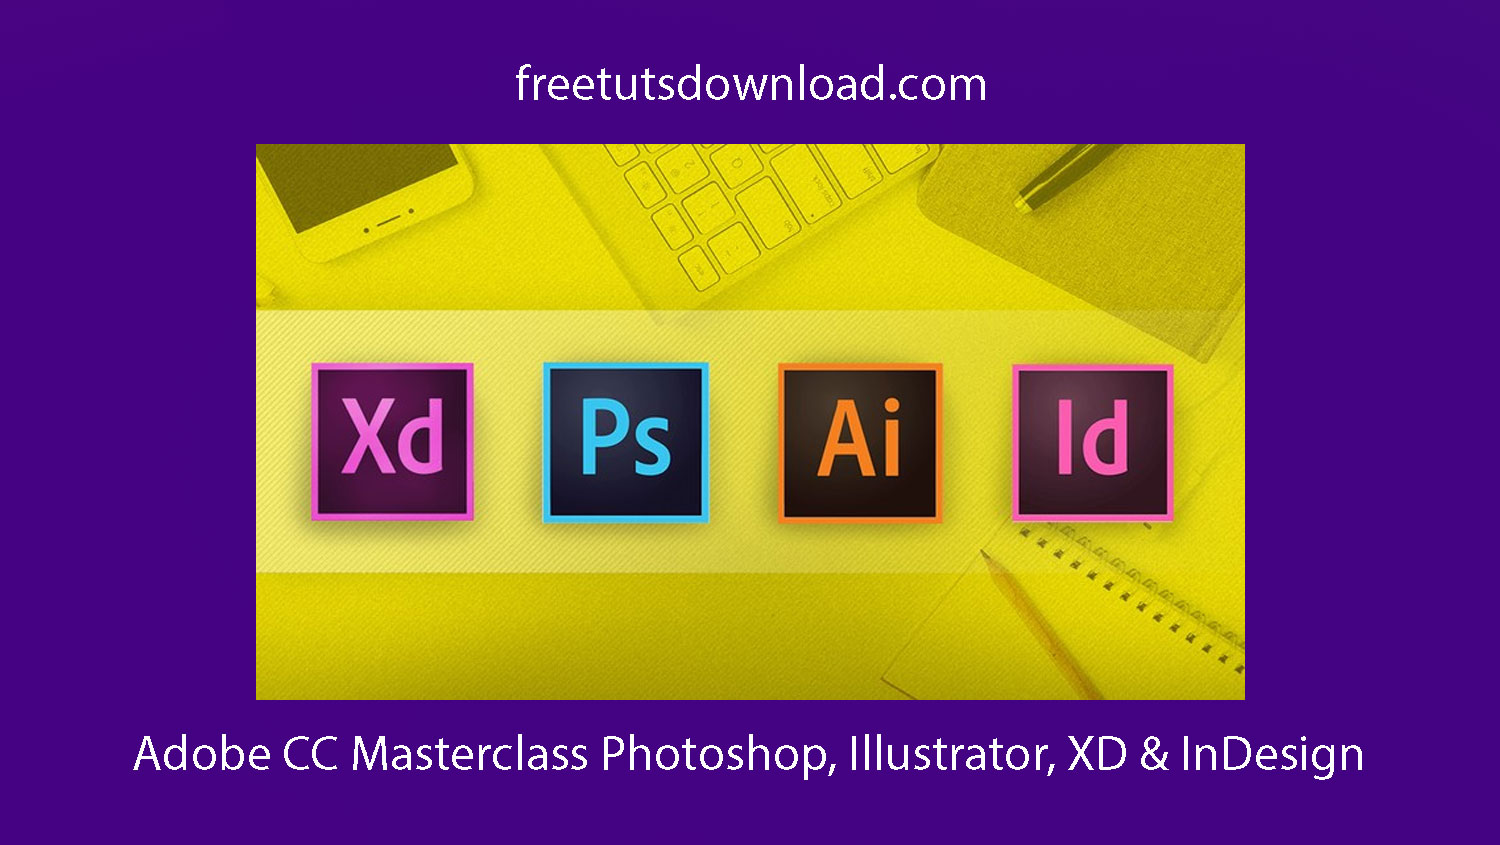 Adobe CC Masterclass Photoshop, Illustrator, XD & InDesign